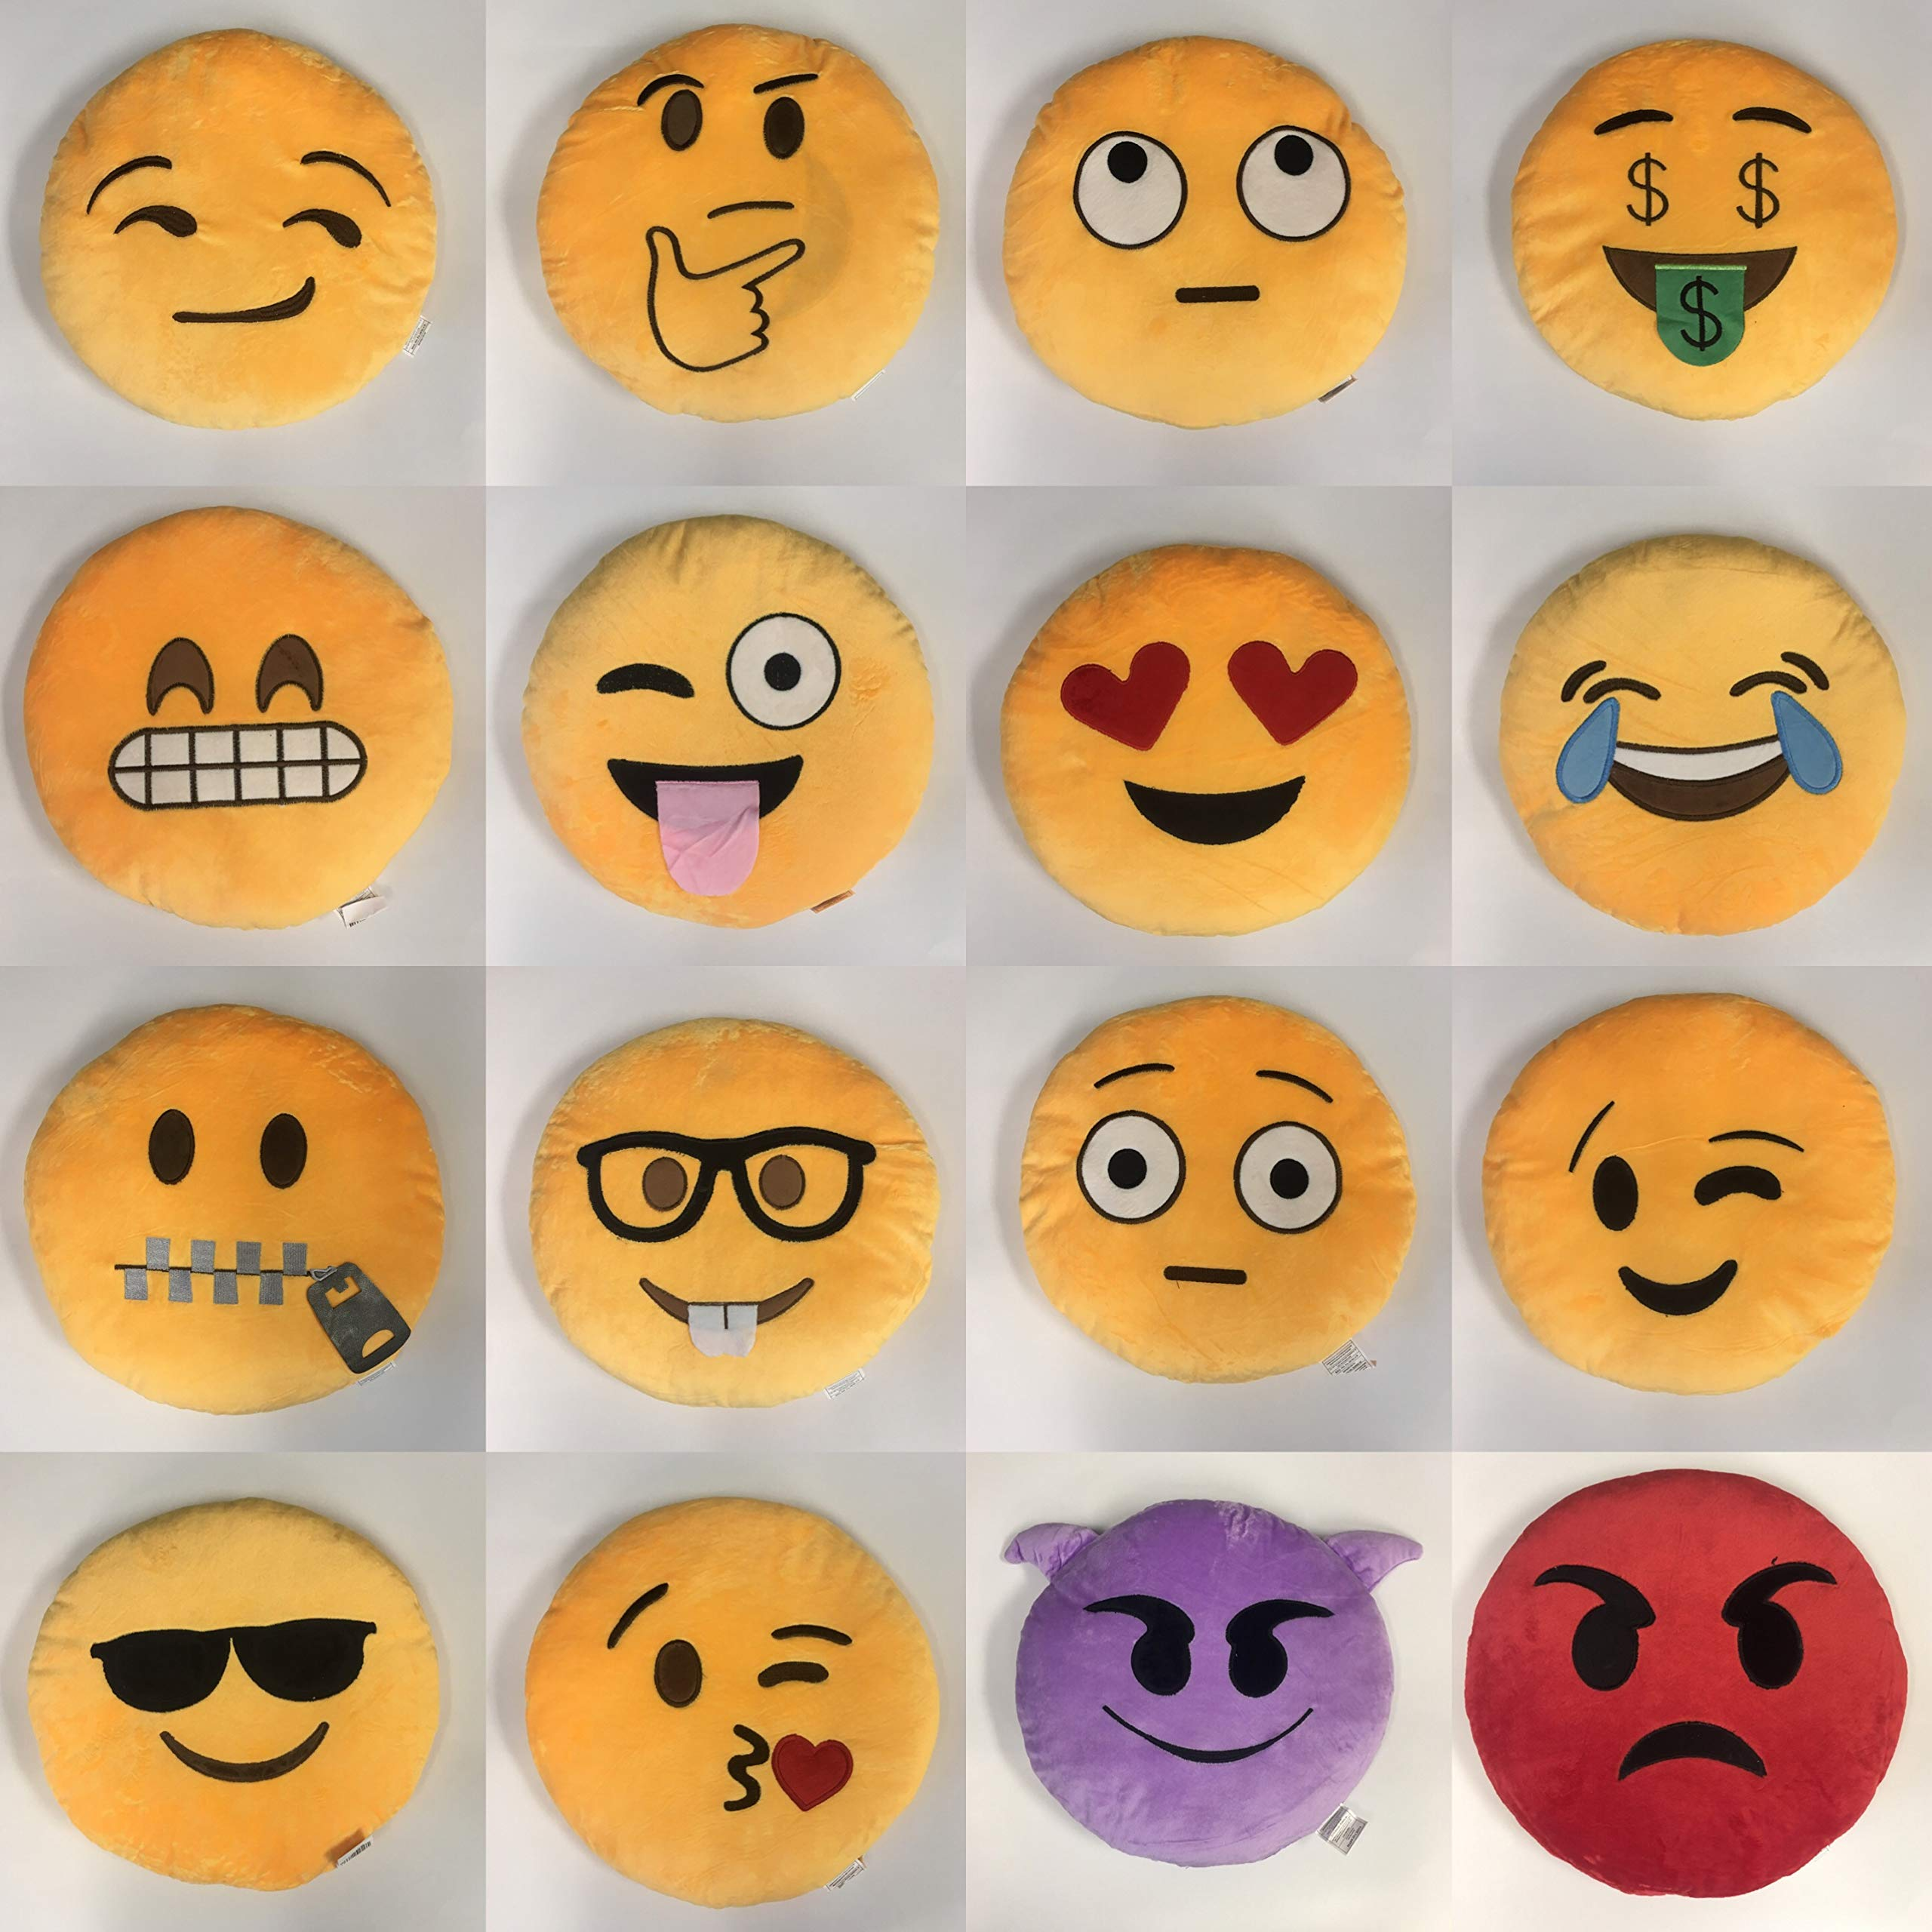 Gloworks 12'' Emoji Pillow (Set of 20) Assorted Emojis